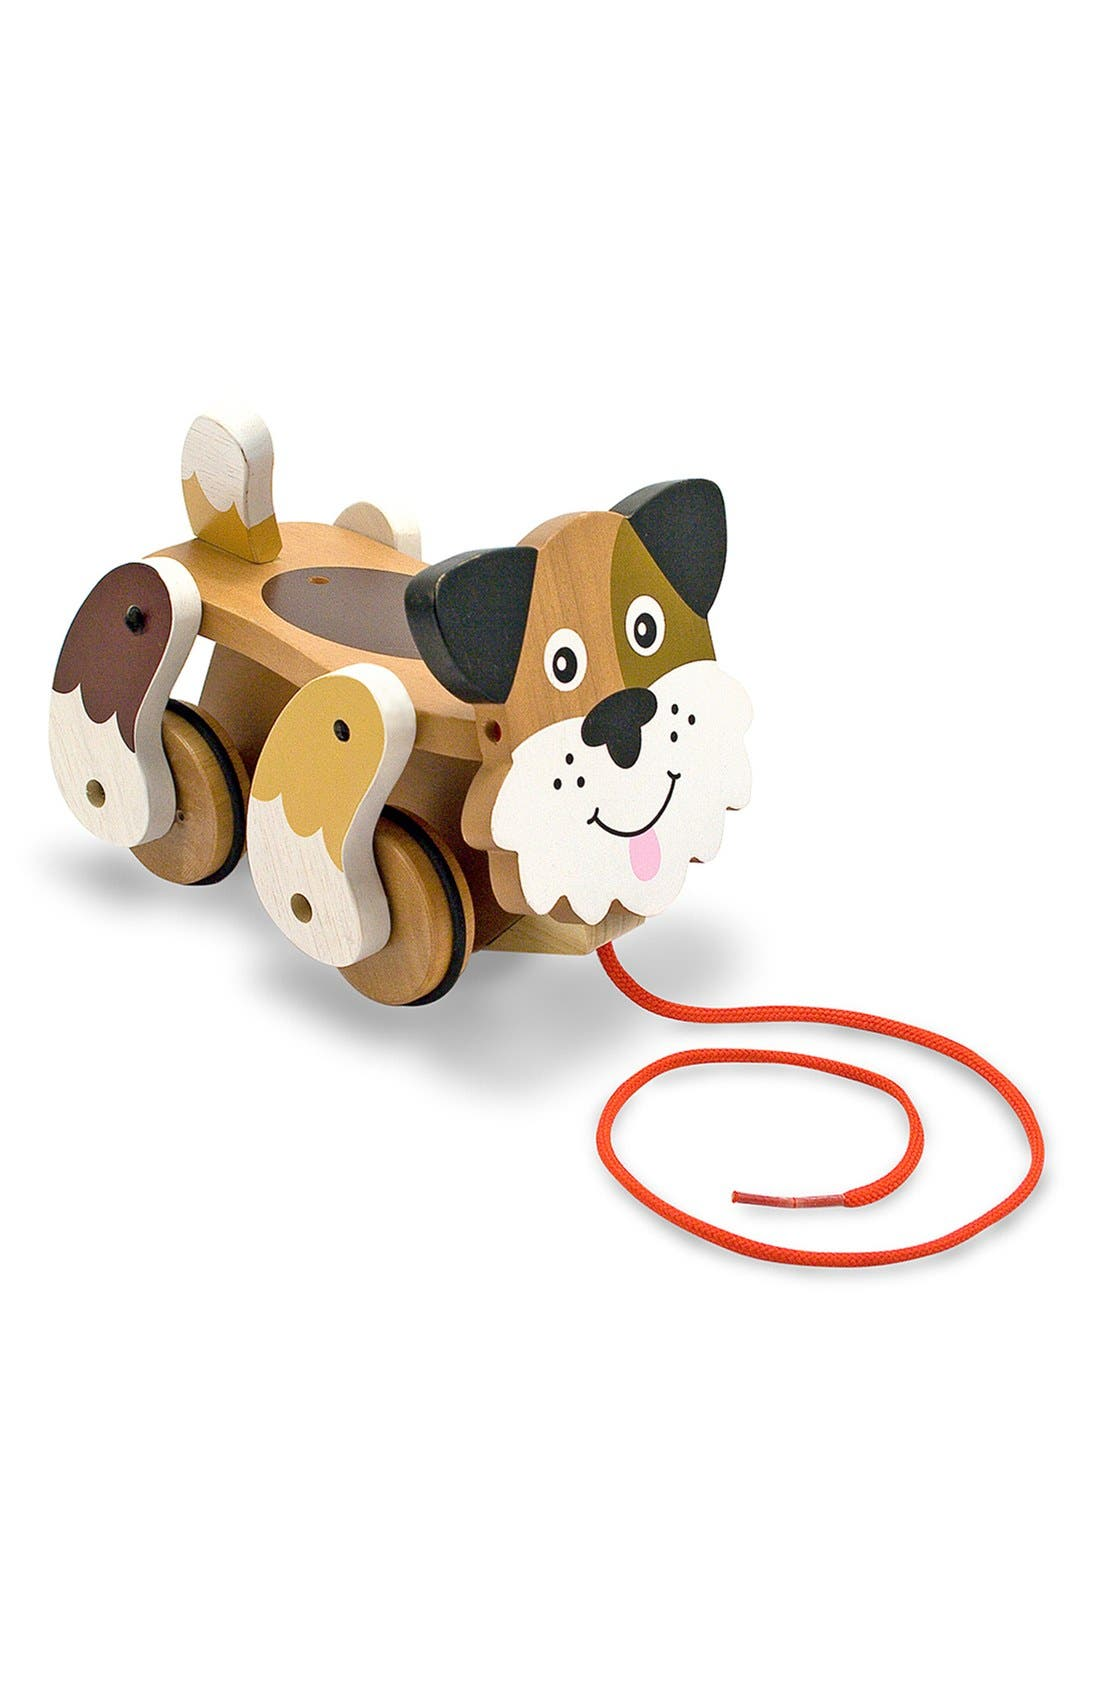 'Playful Puppy' Pull Toy,                         Main,                         color, 200